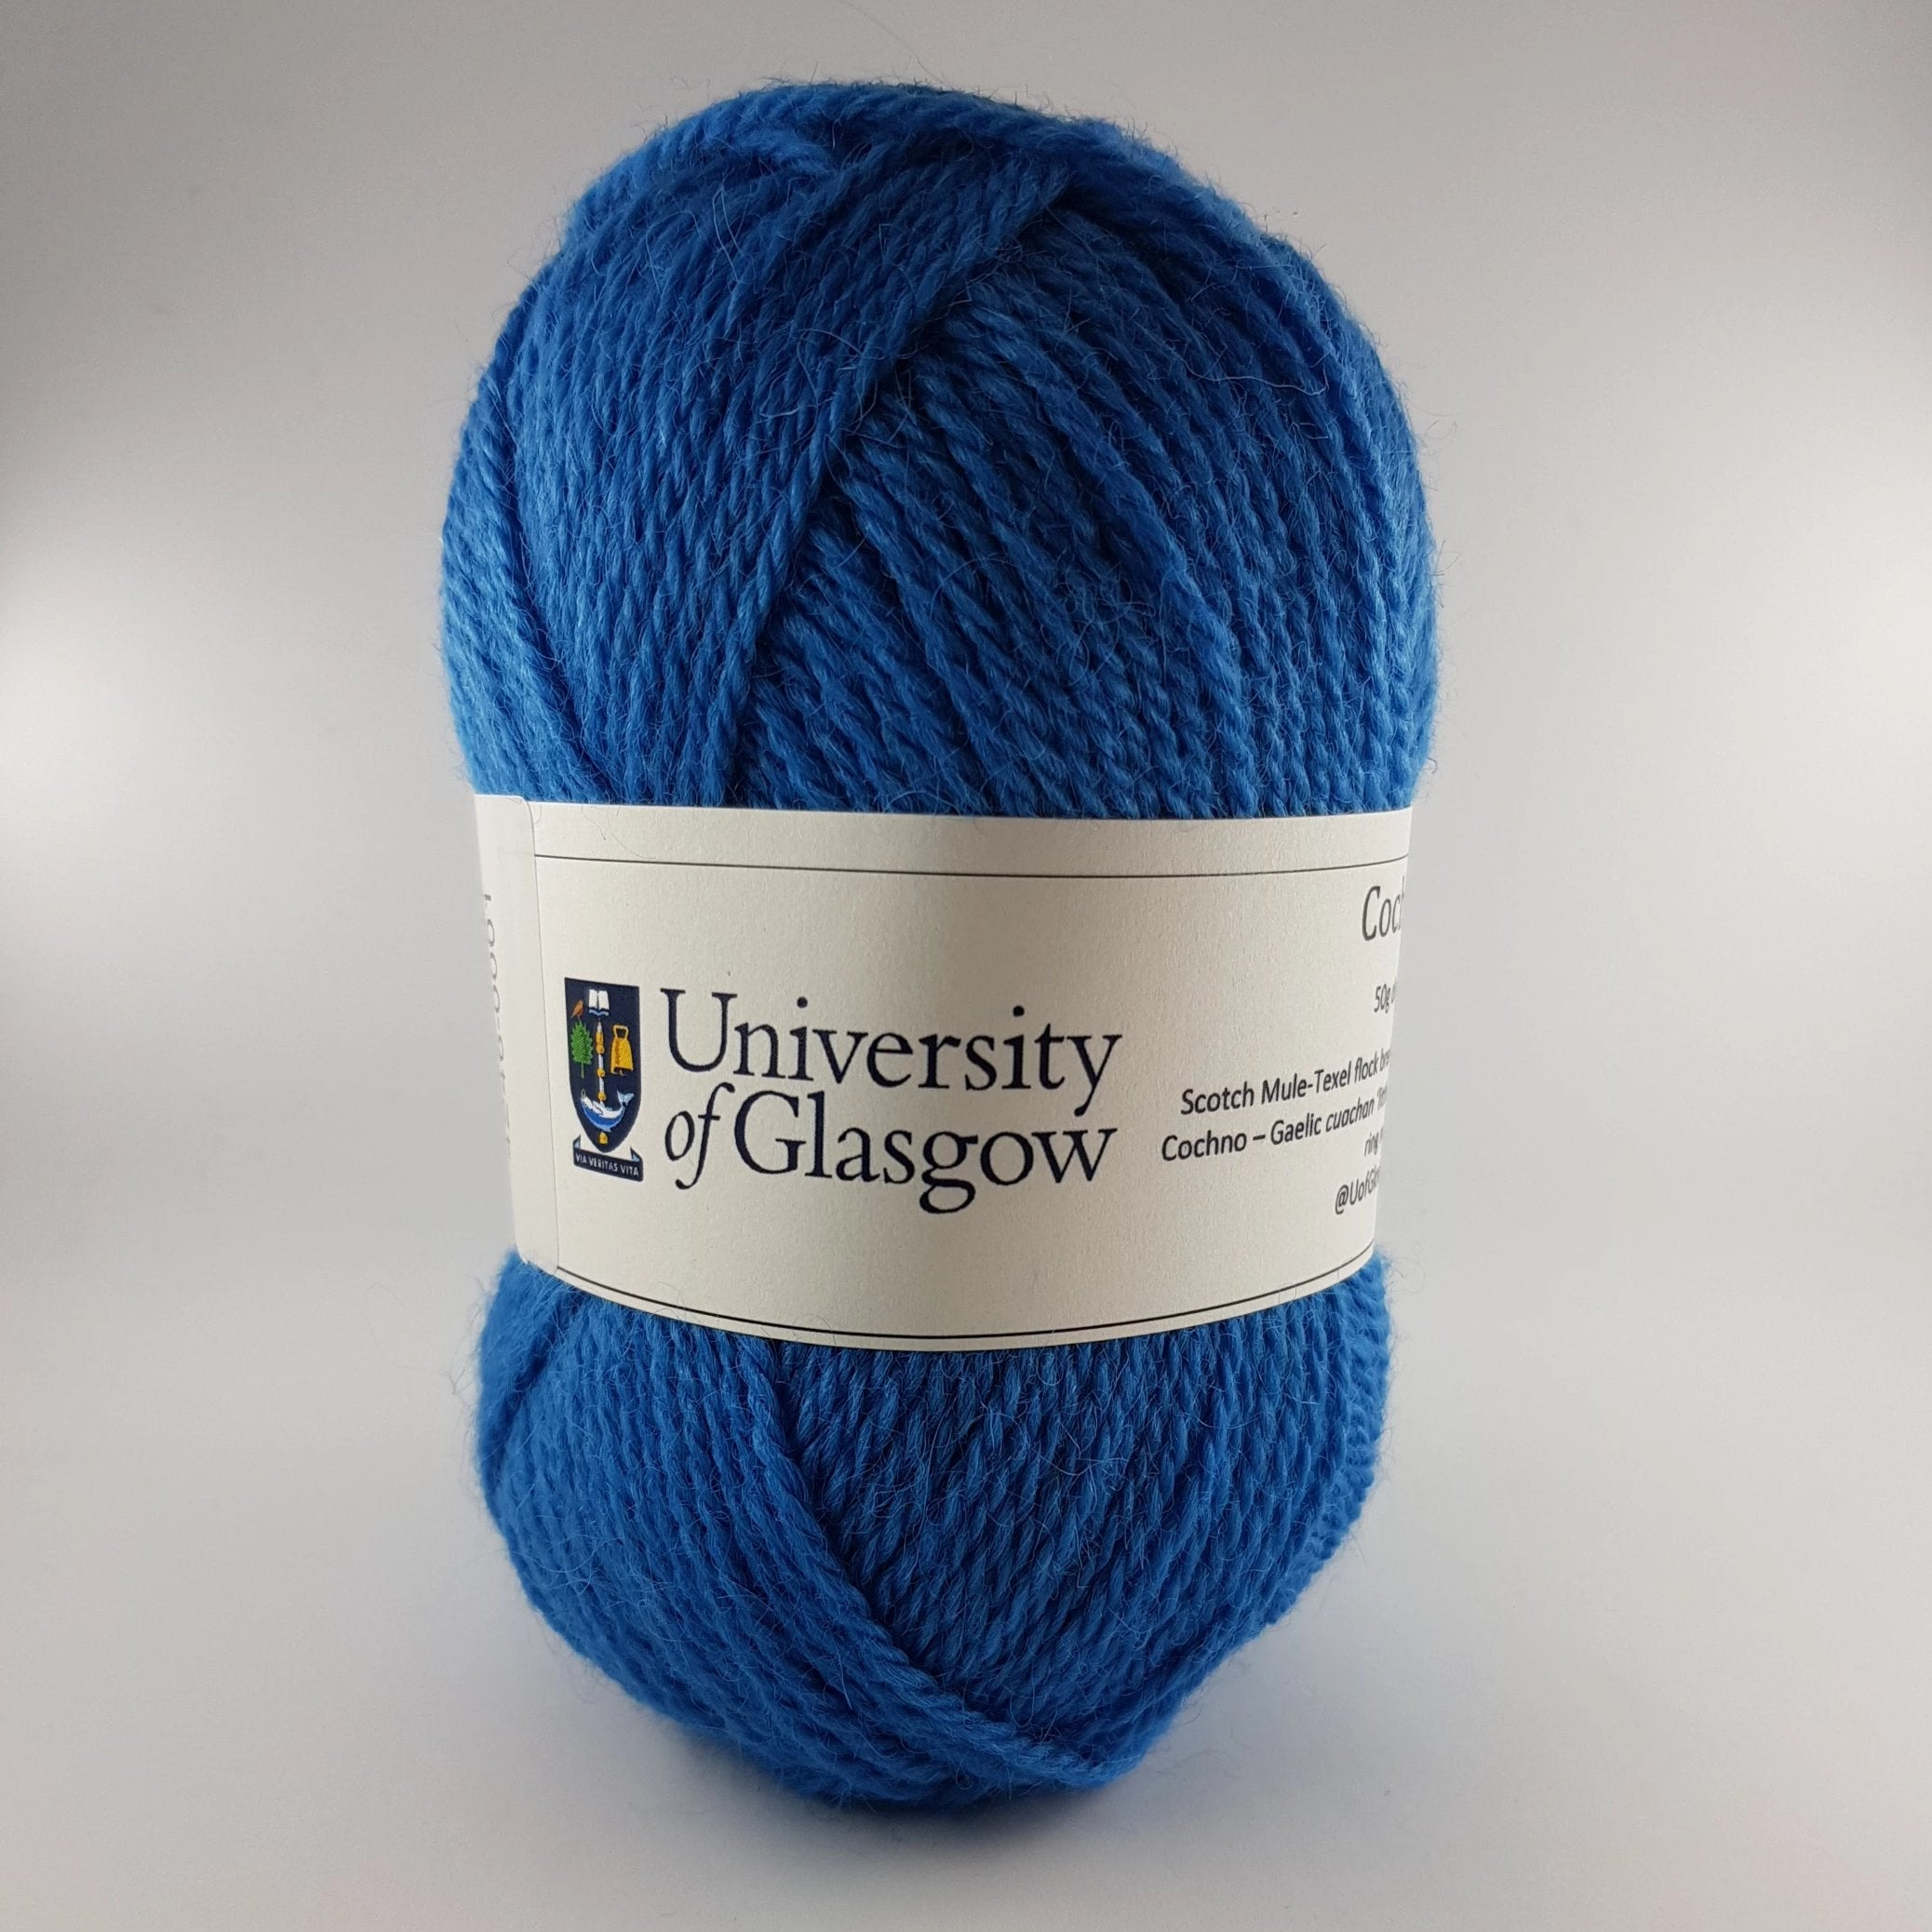 University Cochno Farm Wool - Cobalt Blue